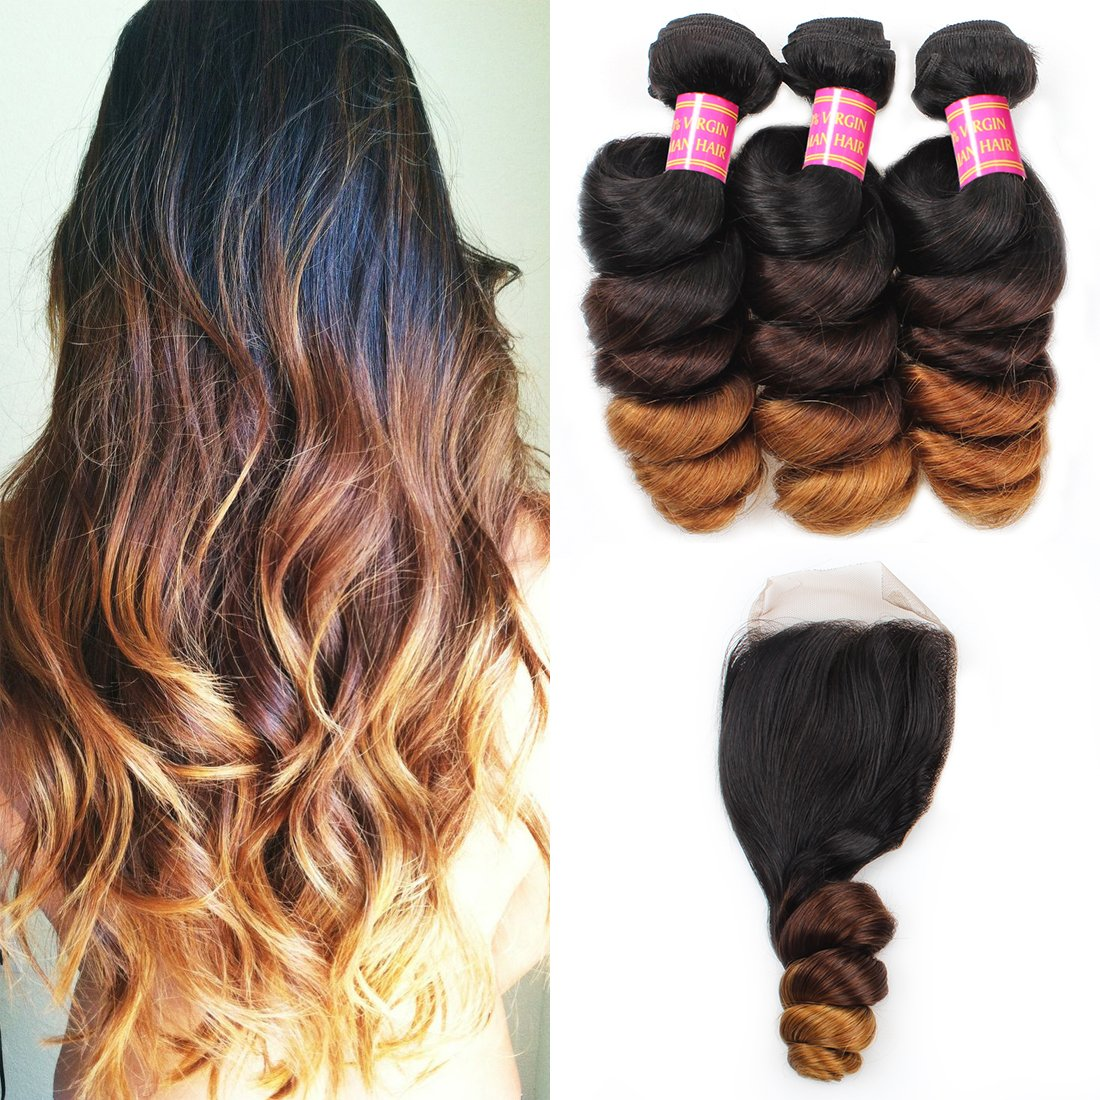 Allove Hair 8A Brazilian Ombre Loose Wave Hair Bundles with Closure Virgin Remy Human Hair Weave Bundles with 4x4 Ombre Loose Wave Lace Closure 1b/4/27 Ombre Human Hair Extensions (18 20 22+16)